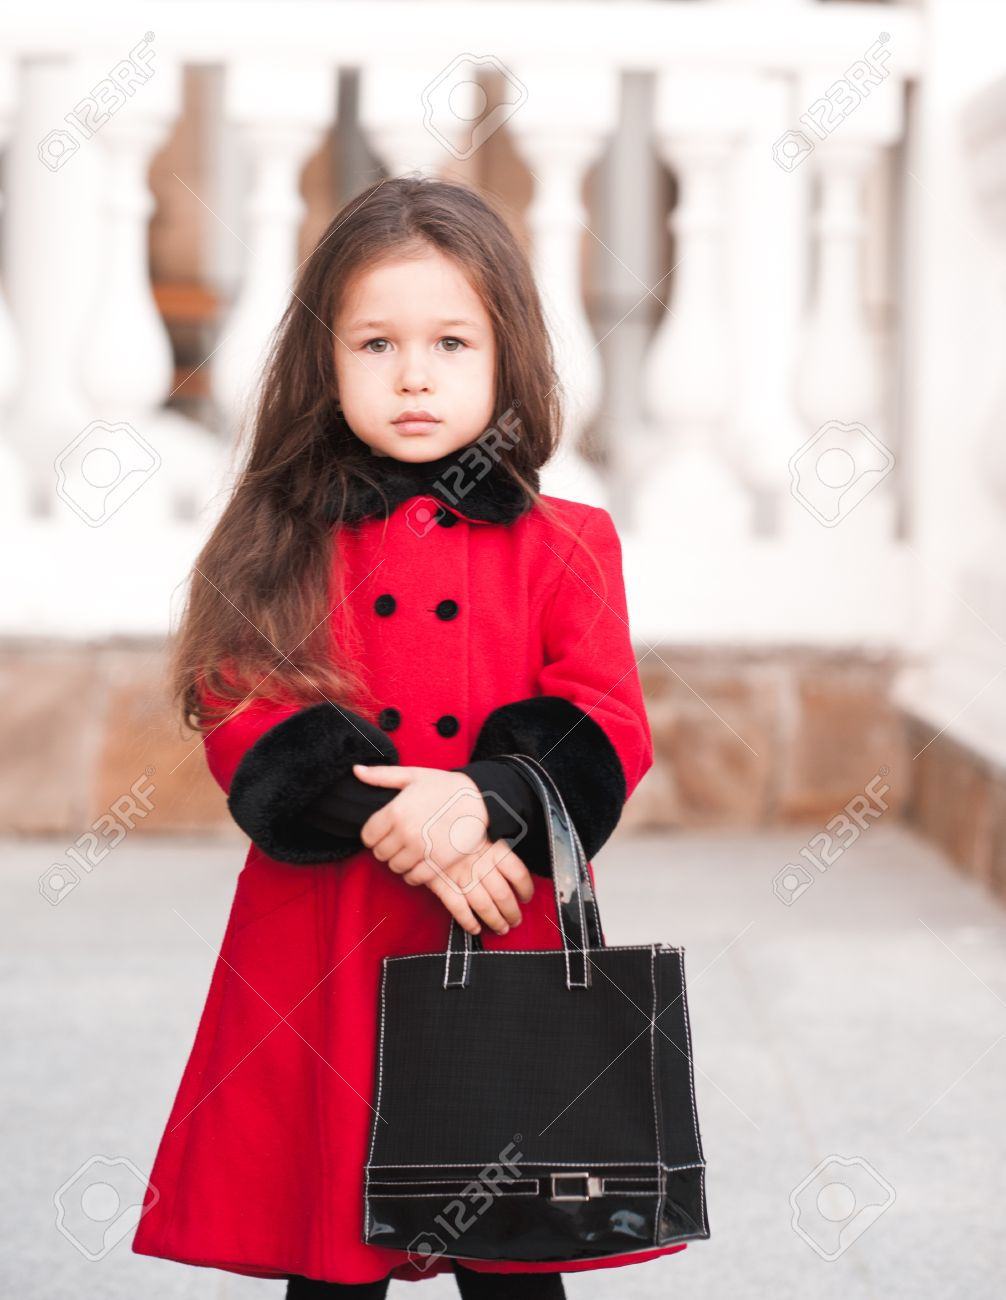 79dcdbe7f Cute Child Girl 4-5 Year Old Posing Outdoors. Wearing Winter.. Stock ...